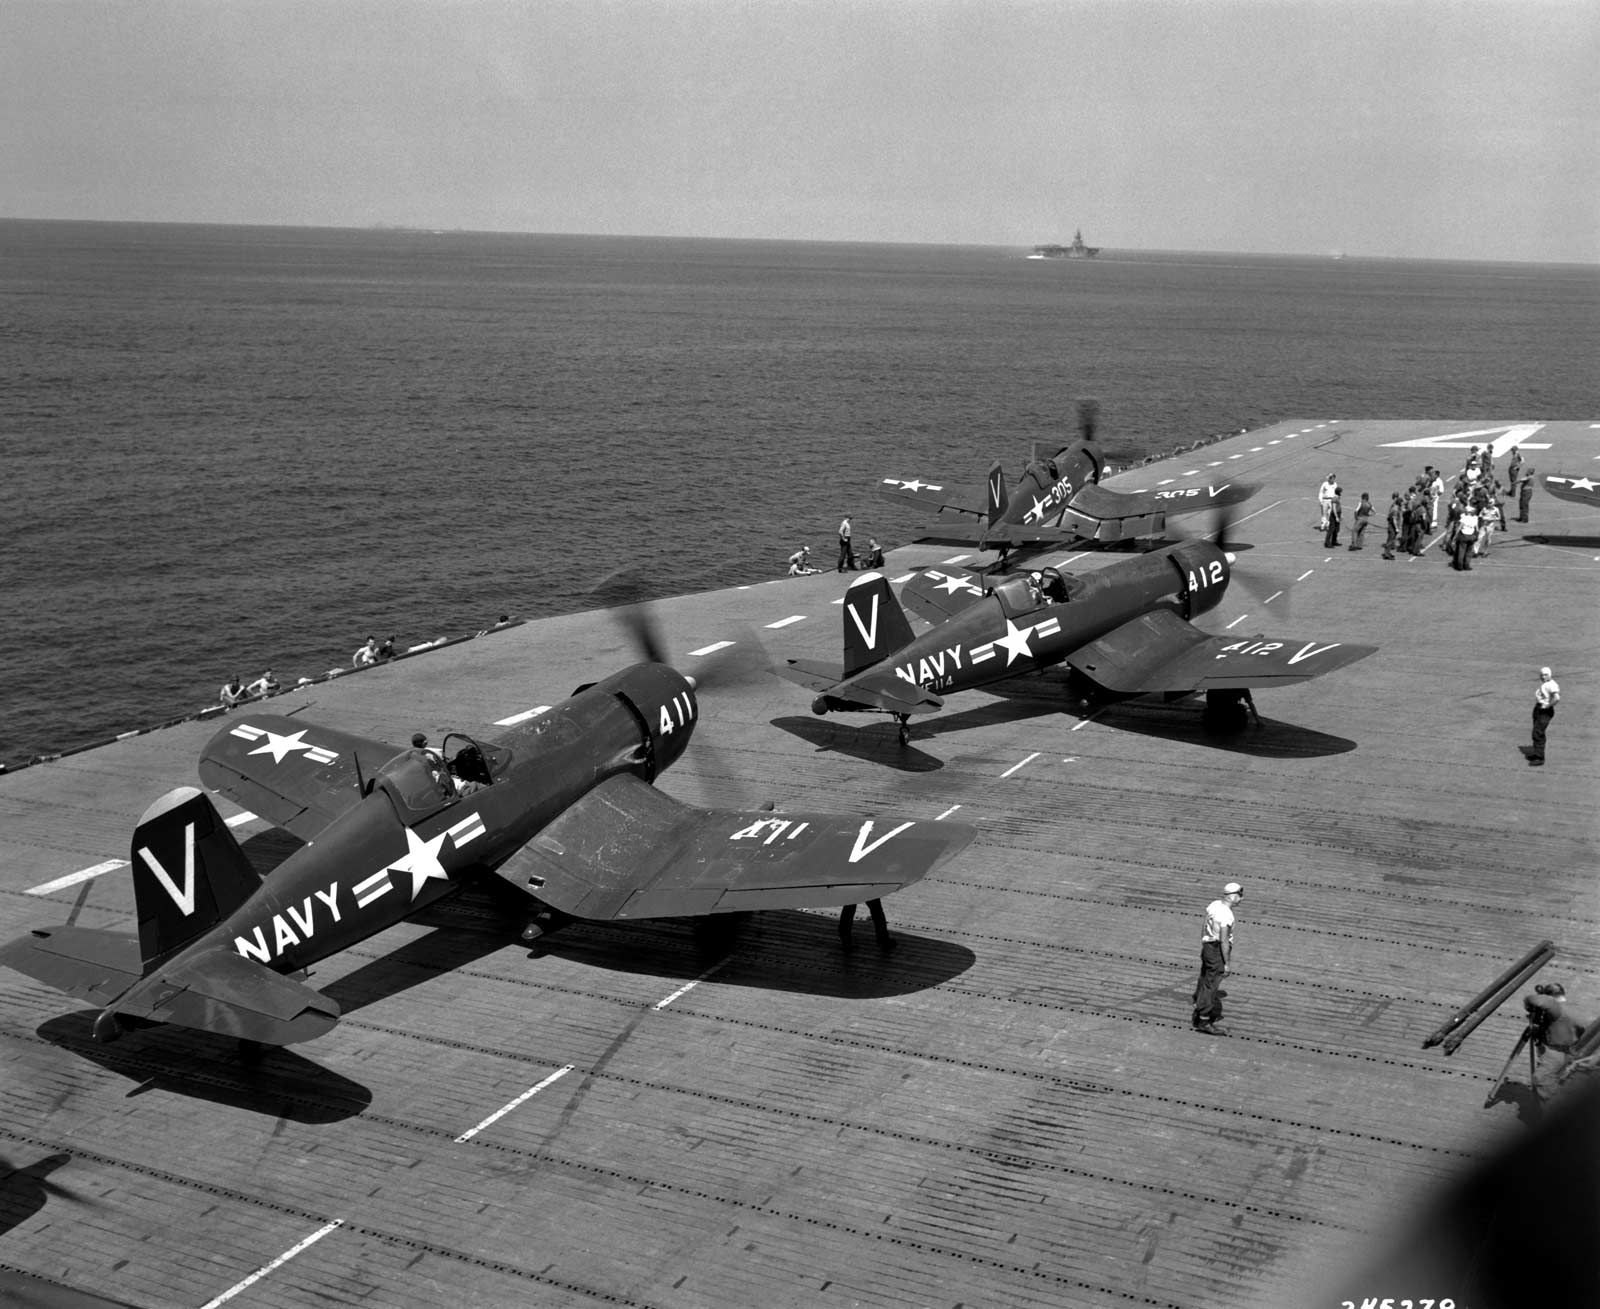 U.S. Navy Corsair fighters prepare to take off from the